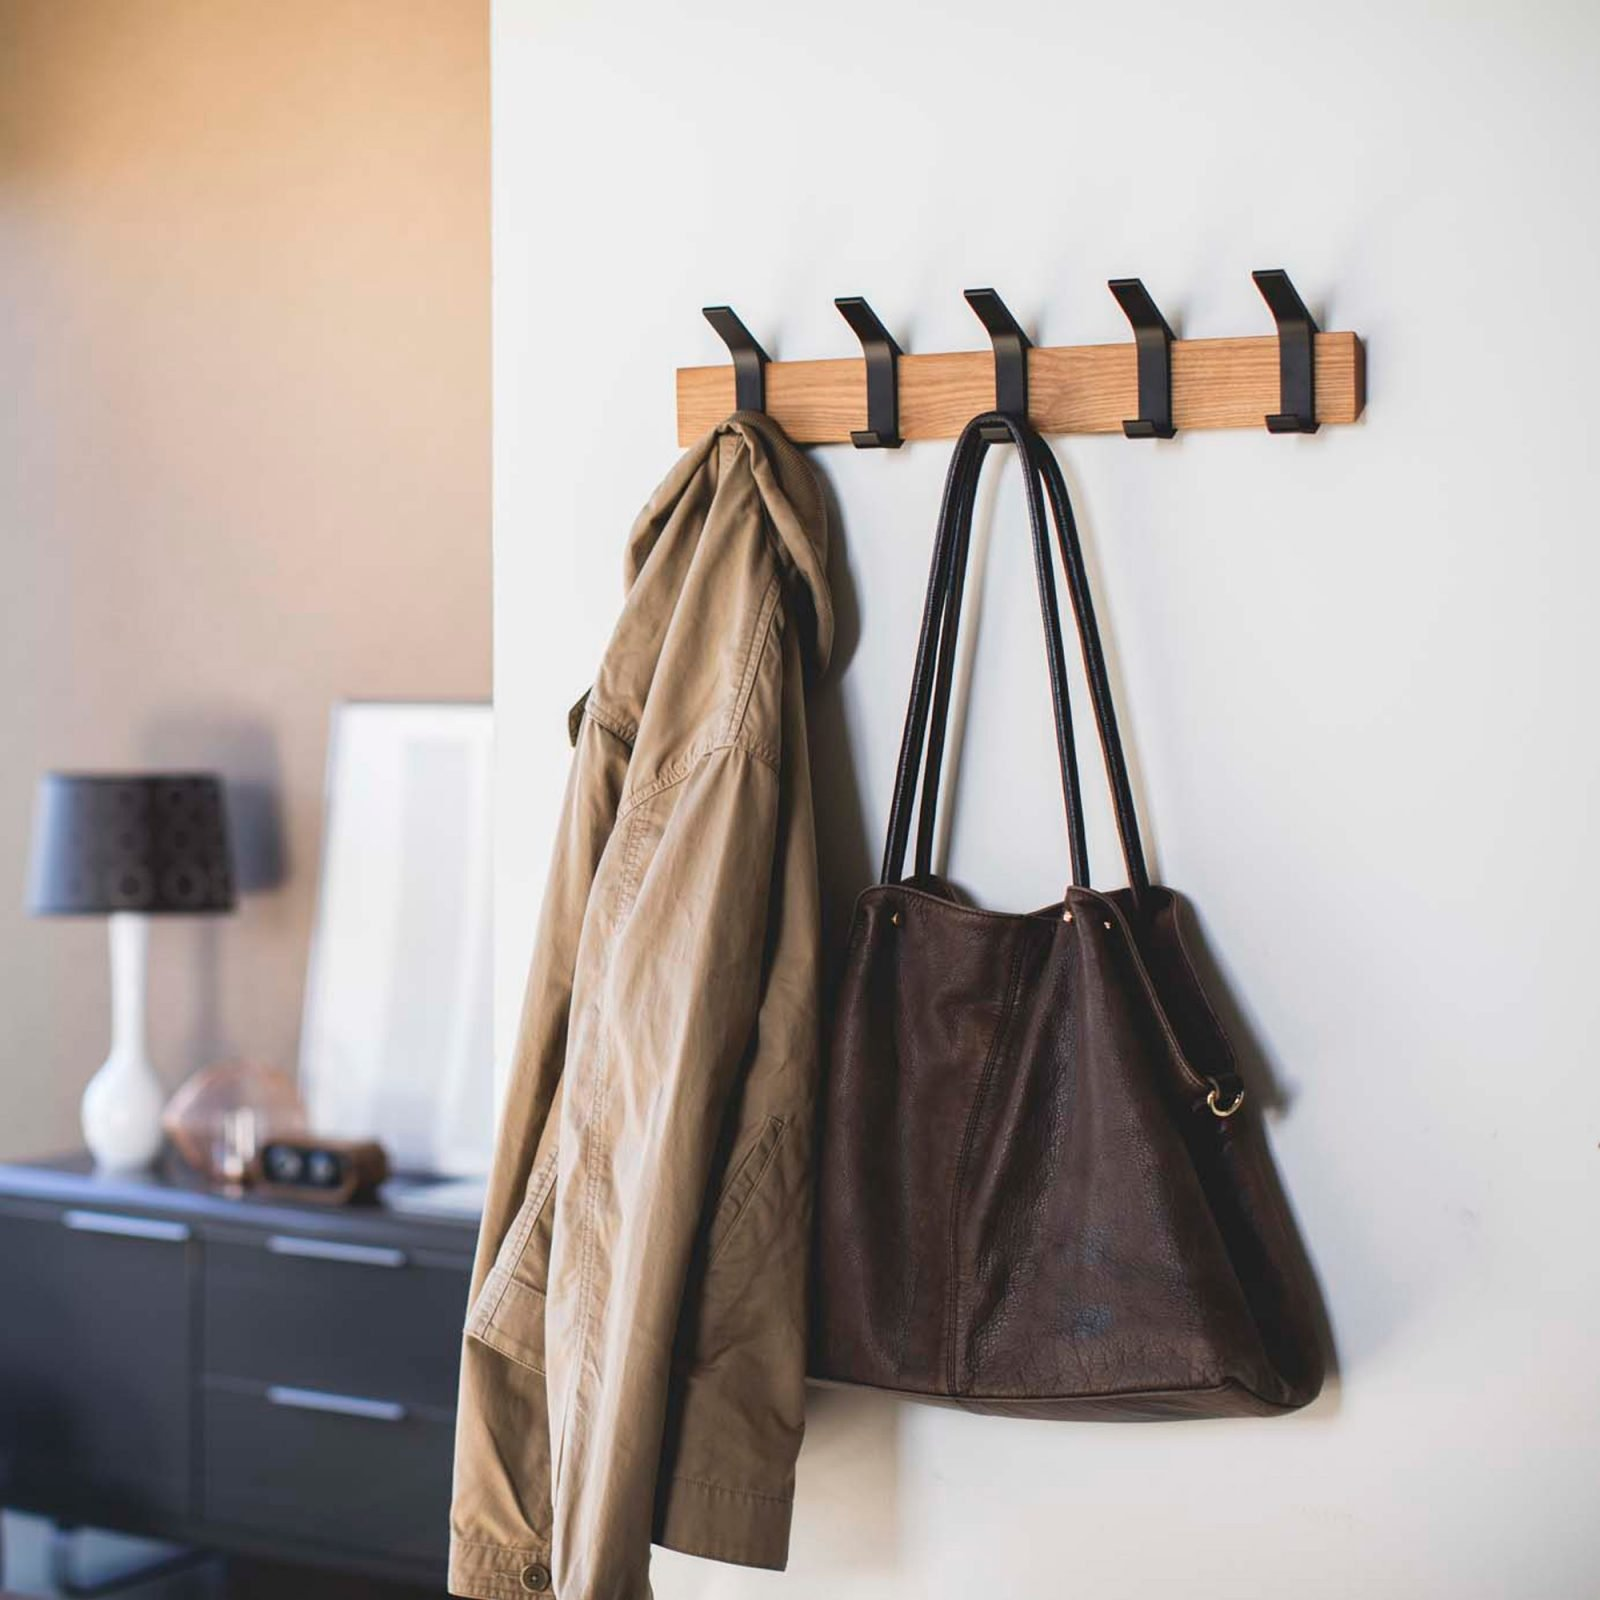 rin-wall-mounted-coat-hanger-brown-6